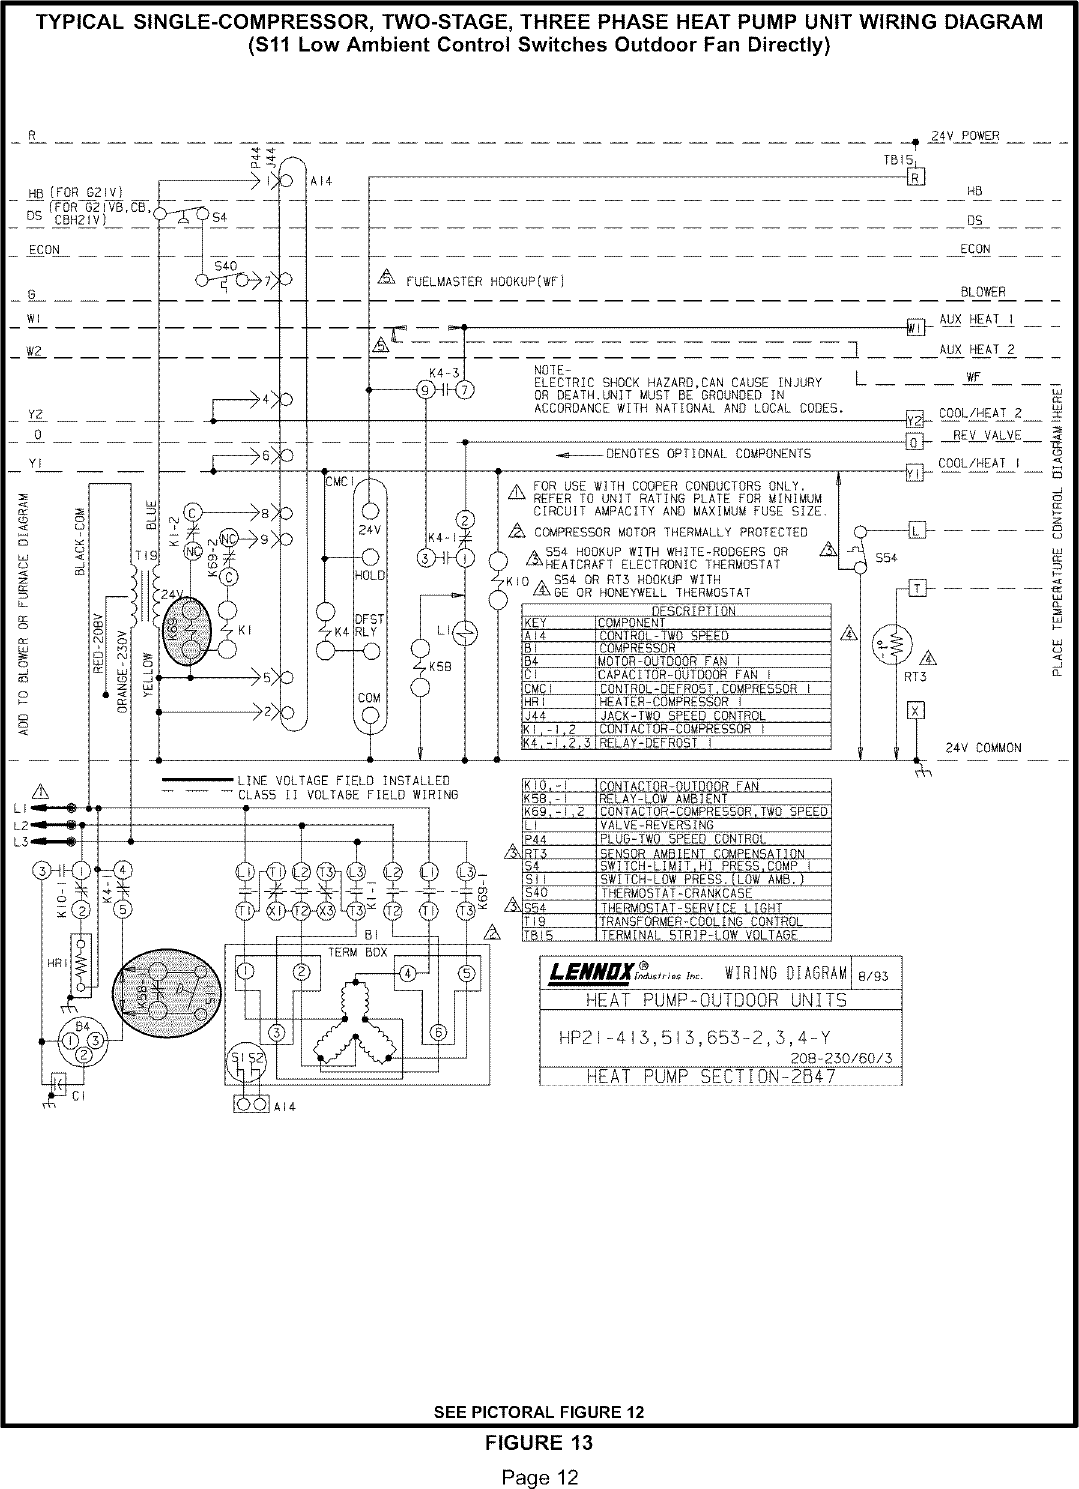 Page 12 of 12 lennox controls and hvac accessories manual l0806303